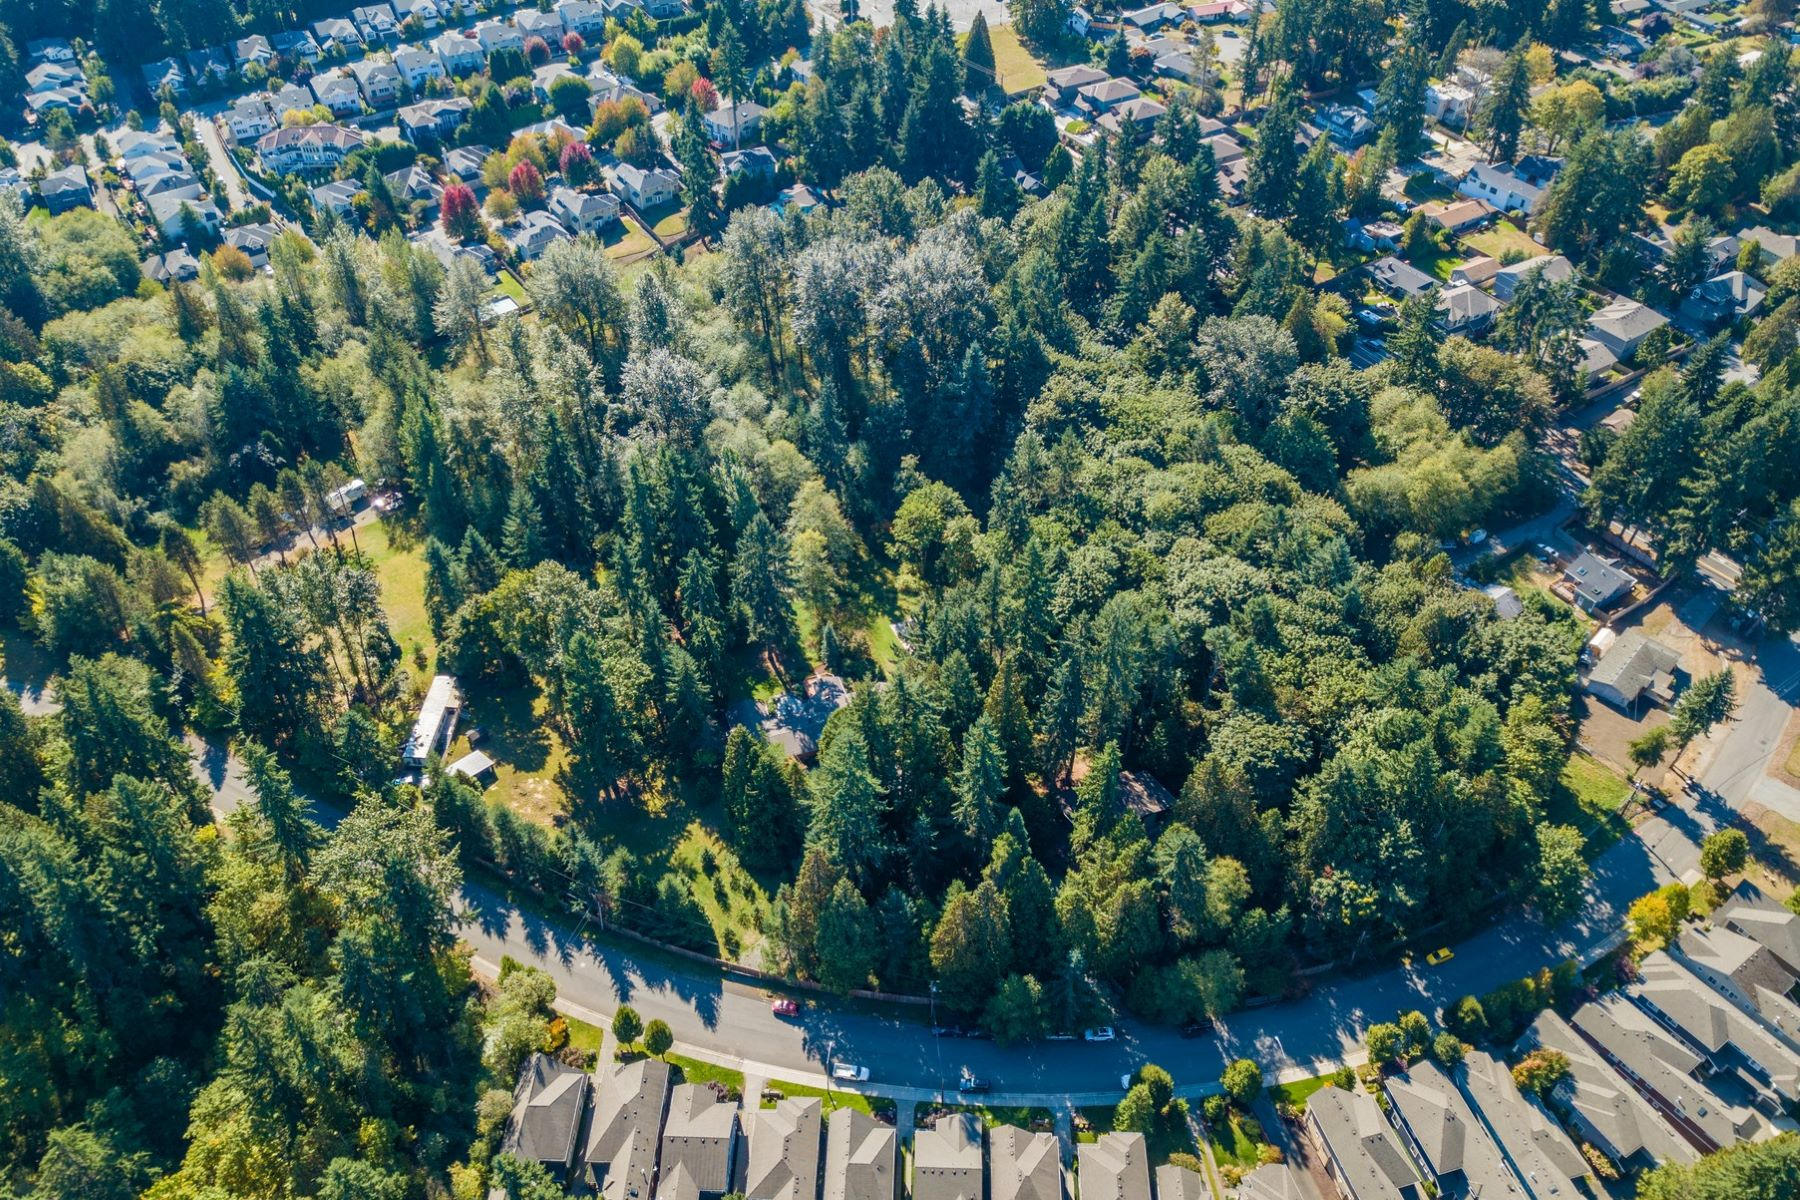 Land for Sale at 13255 NE 97th, Kirkland, WA 98033 13255 NE 97th Kirkland, Washington 98033 United States